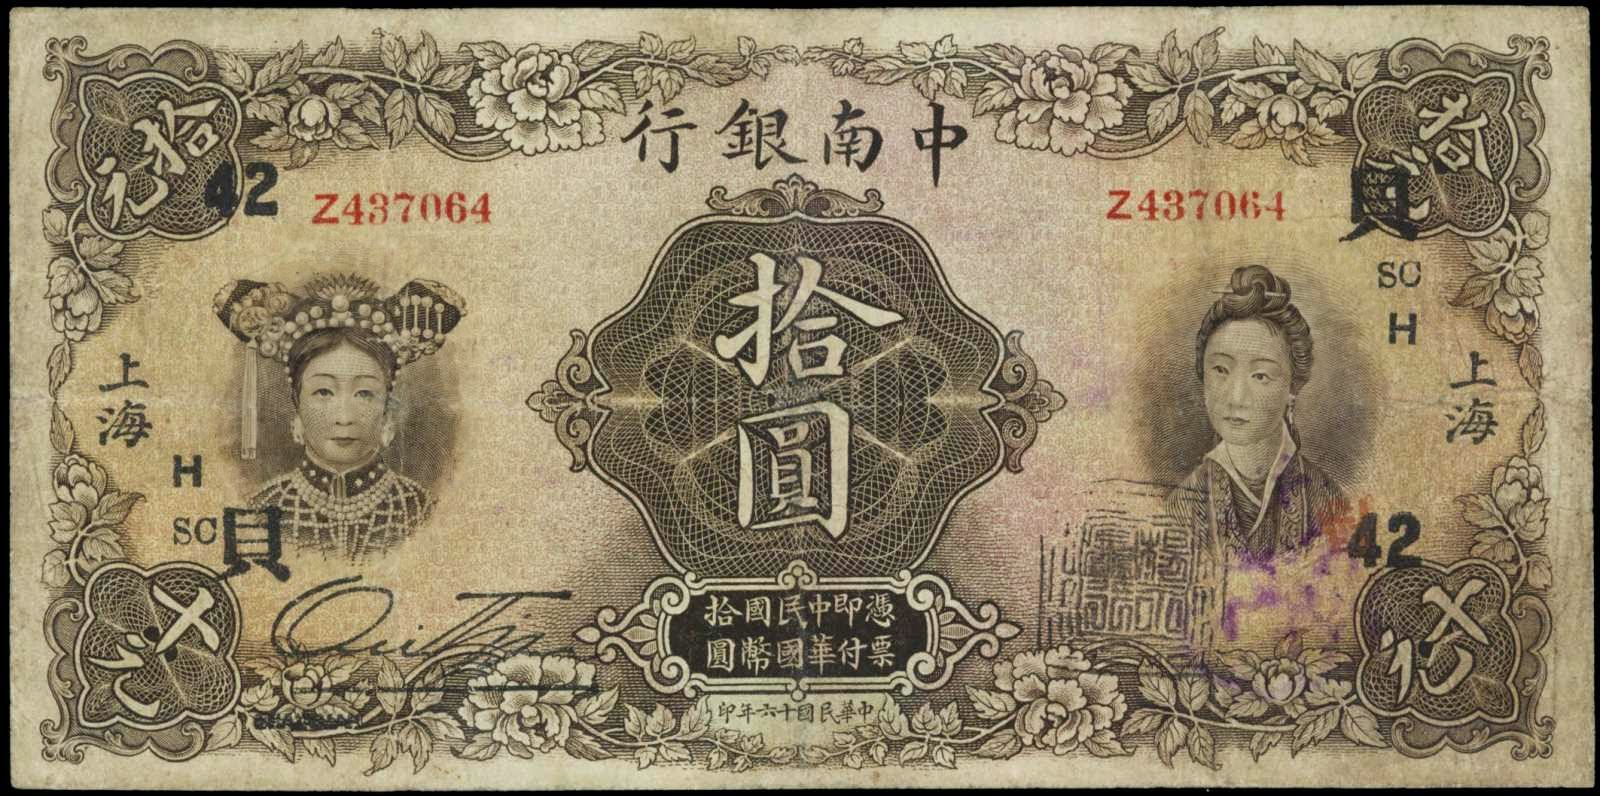 China Banknotes 10 Yuan 1927 China And South Sea Bank